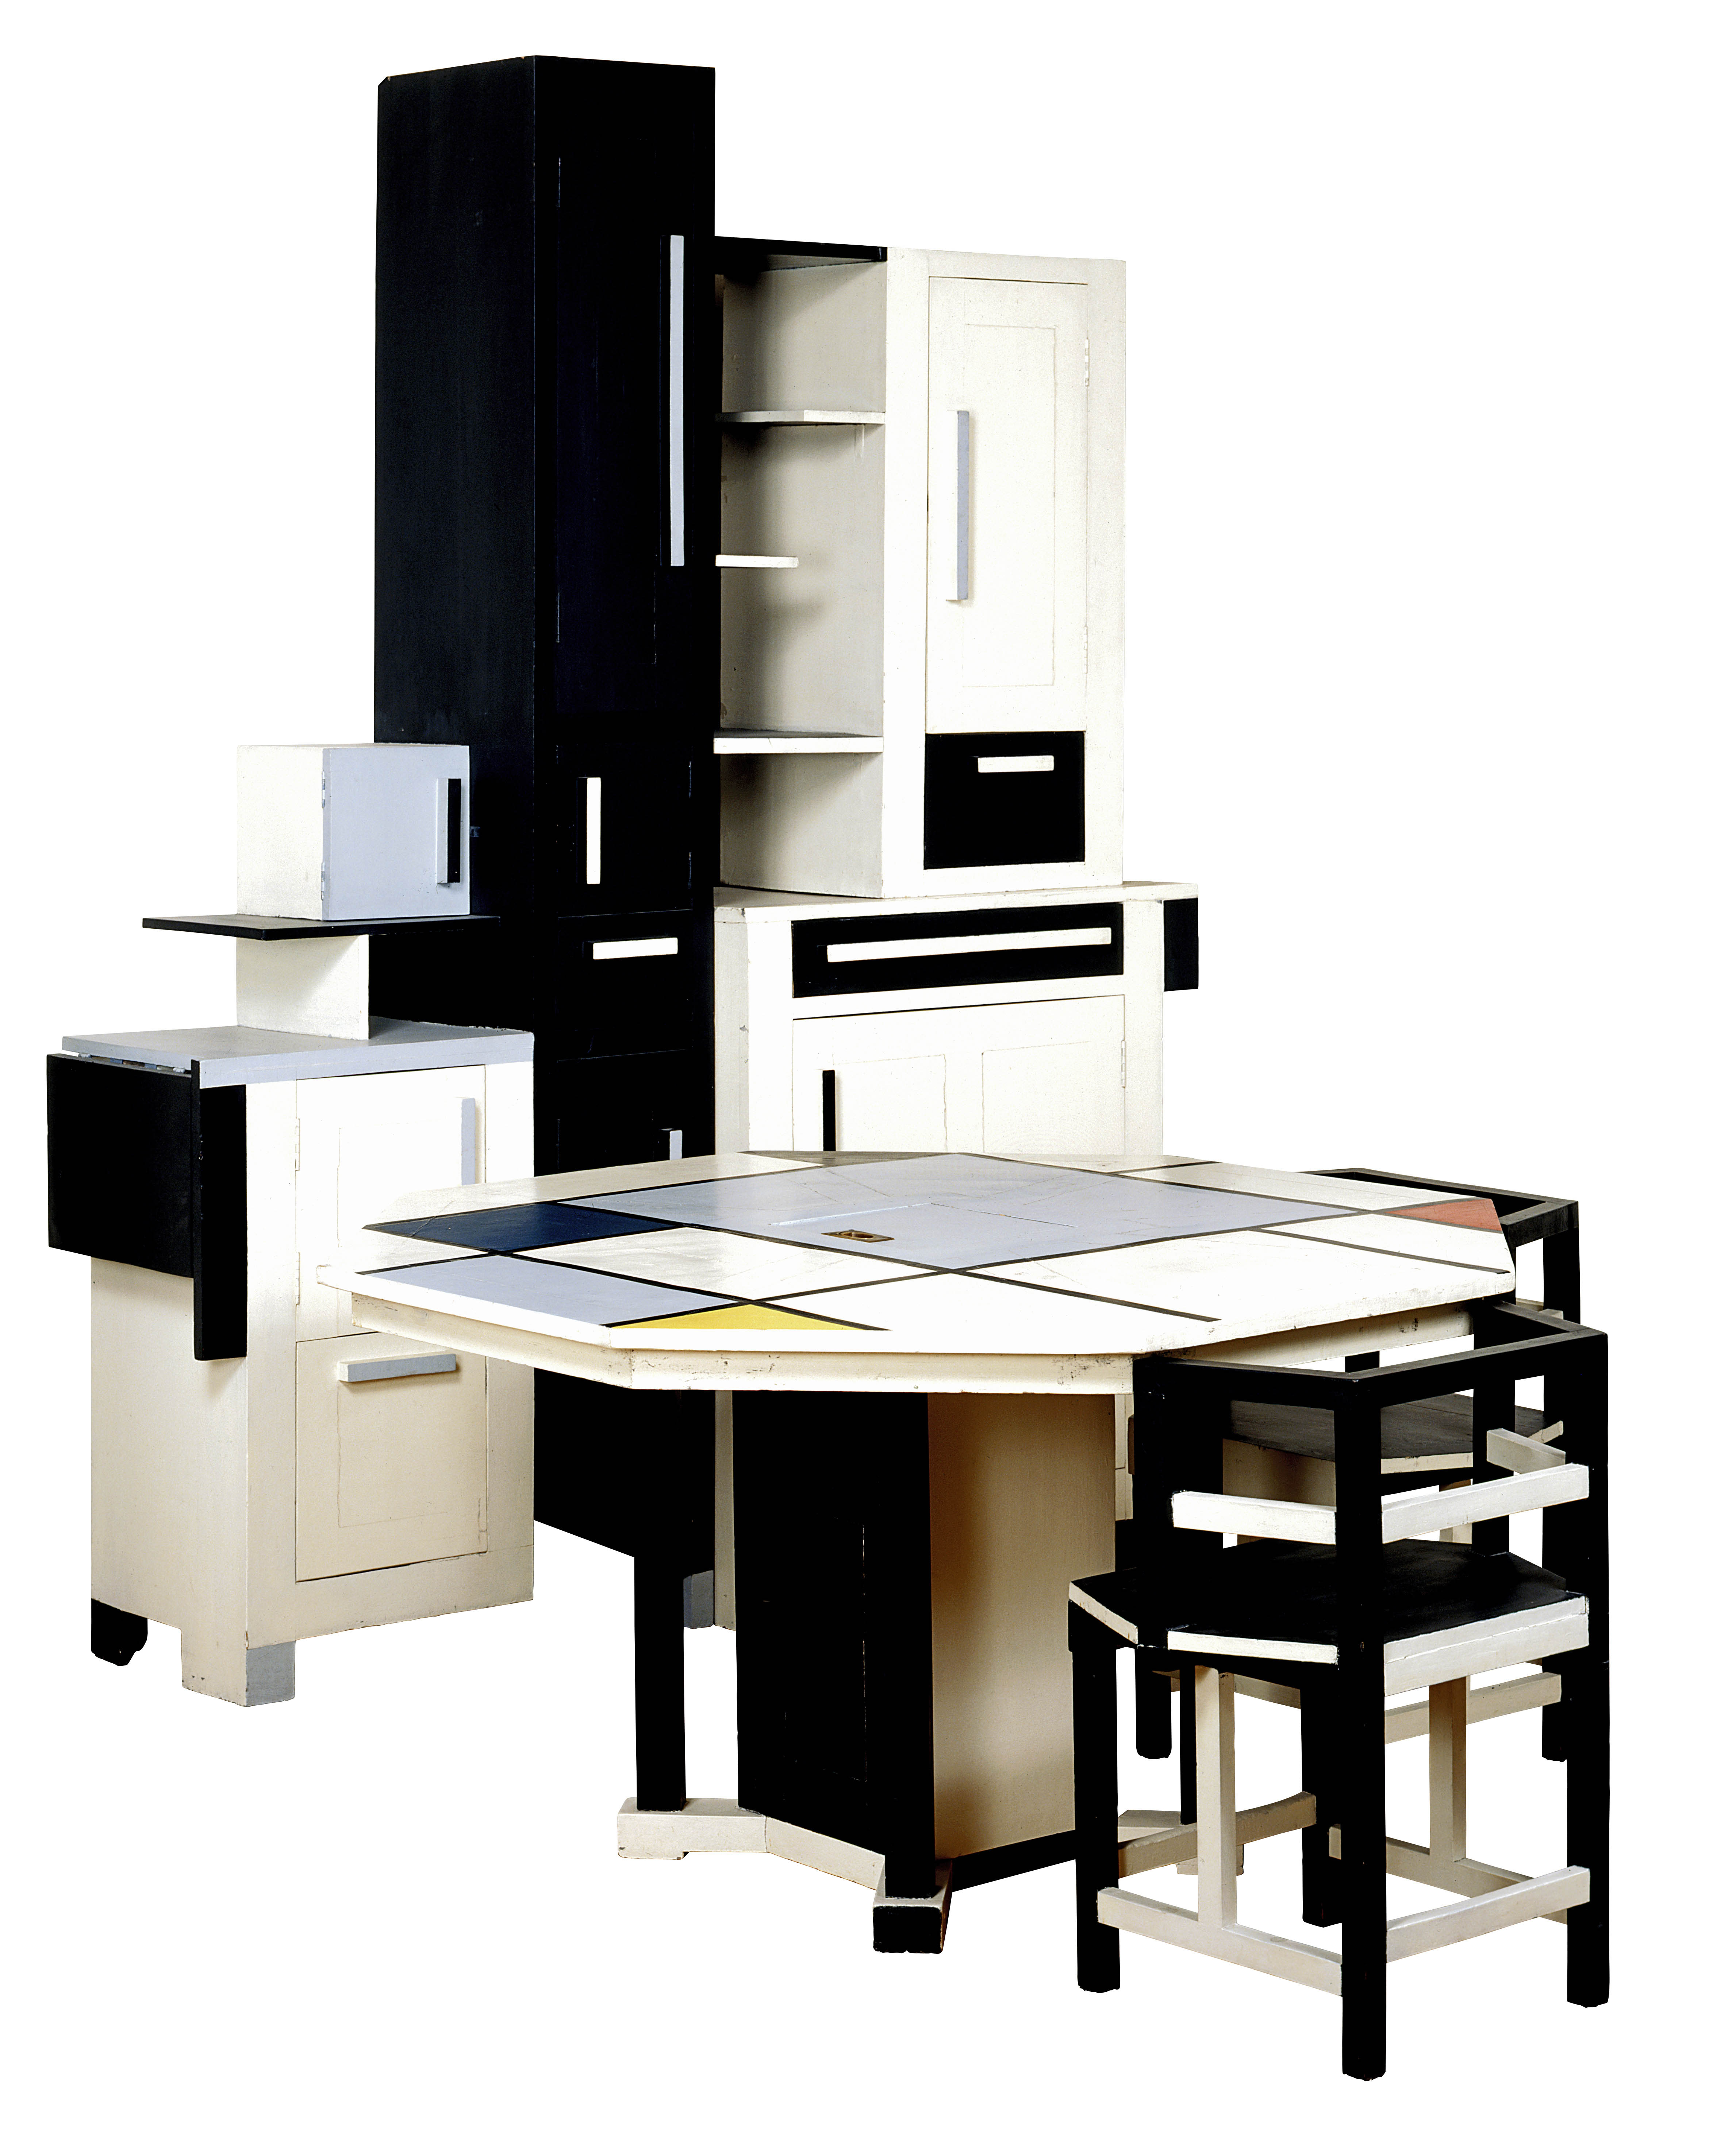 hamburg neuer ffnung sammlung design und spiegel kantine alte und moderne kunst. Black Bedroom Furniture Sets. Home Design Ideas